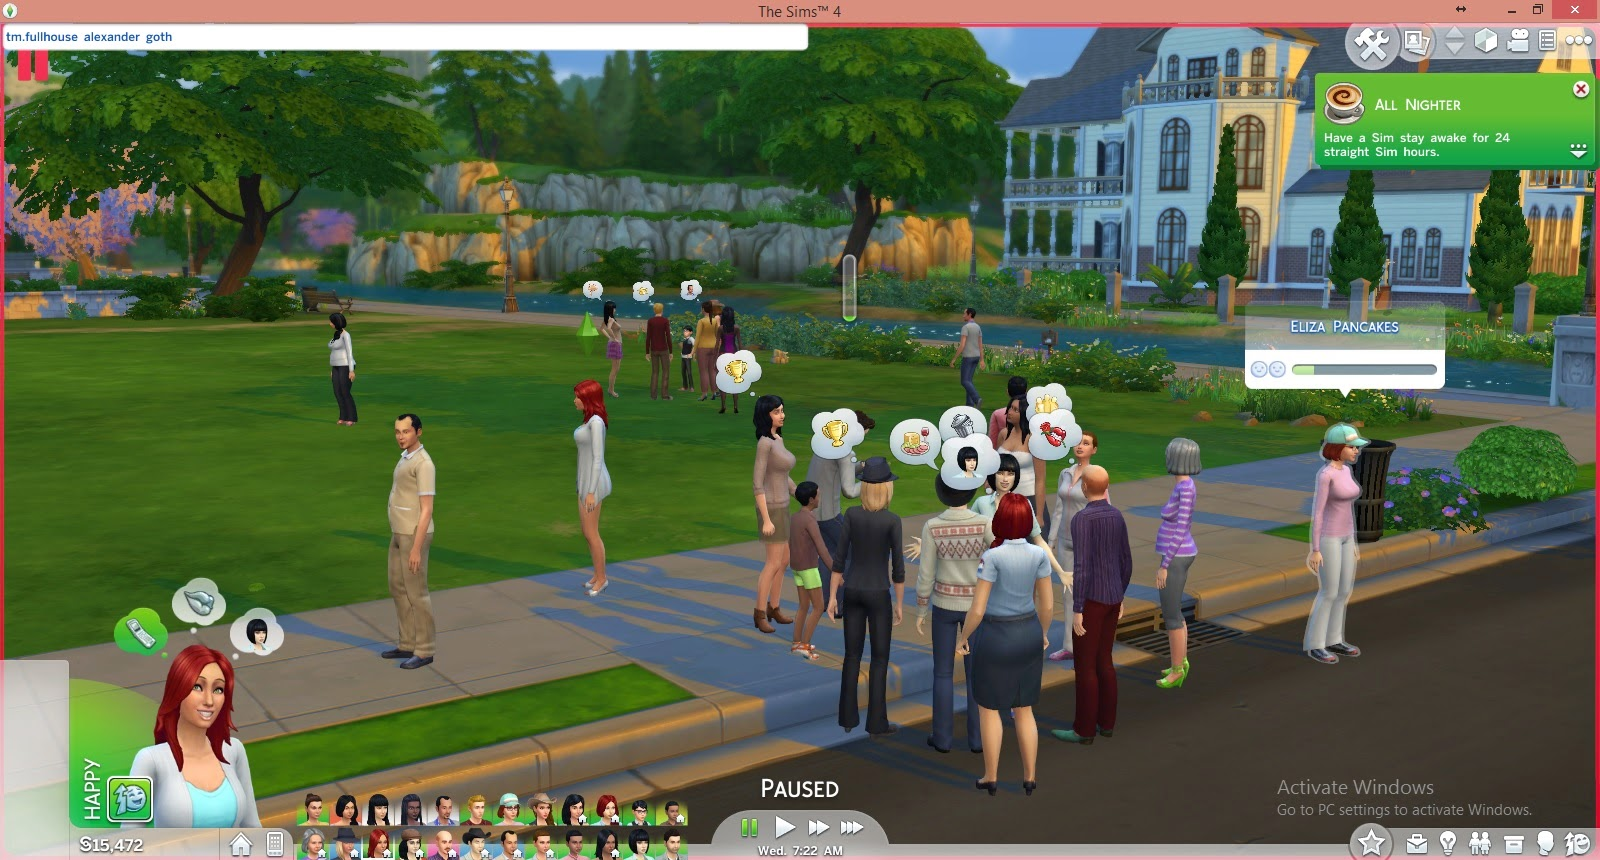 Sims 4 Mods - Bing images